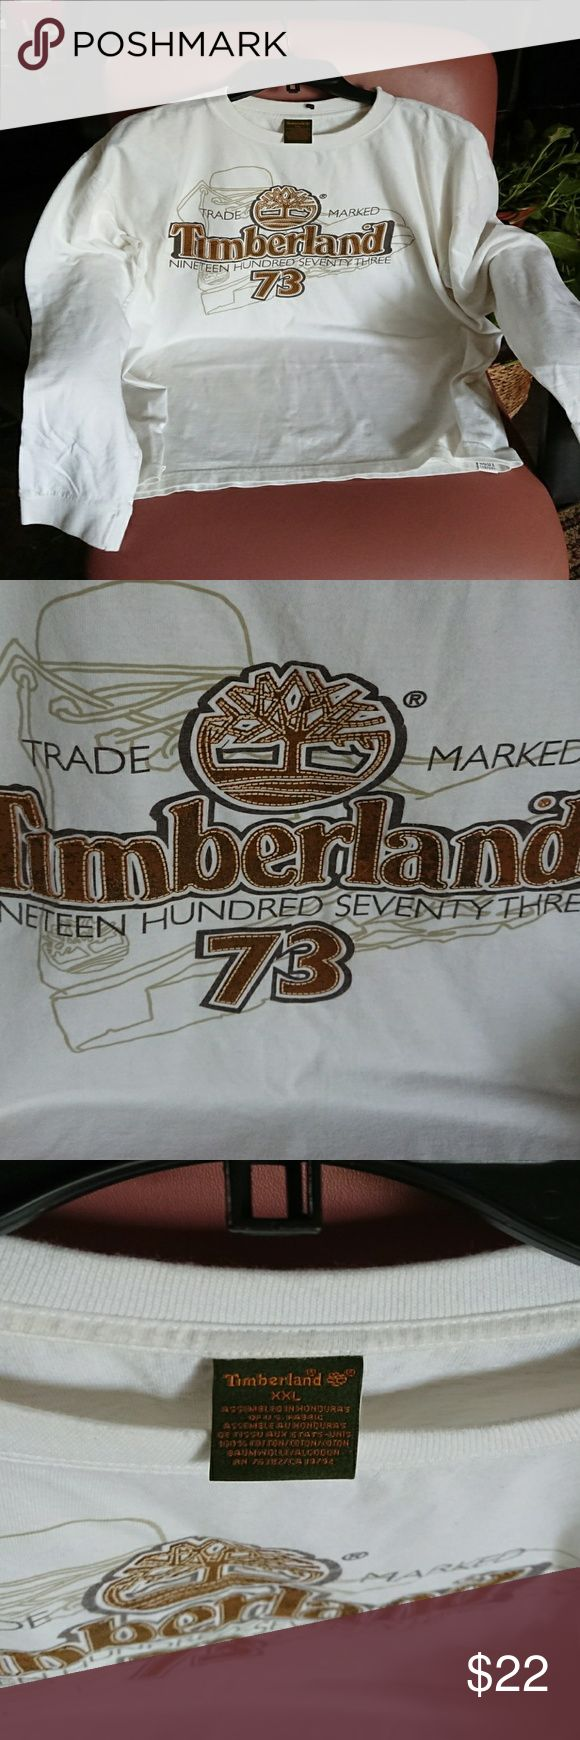 VINTAGE Timberland shirt men's XXL white longsleev Pre-owned no defects, one bottom spot see last photo Timberland Shirts Tees - Long Sleeve